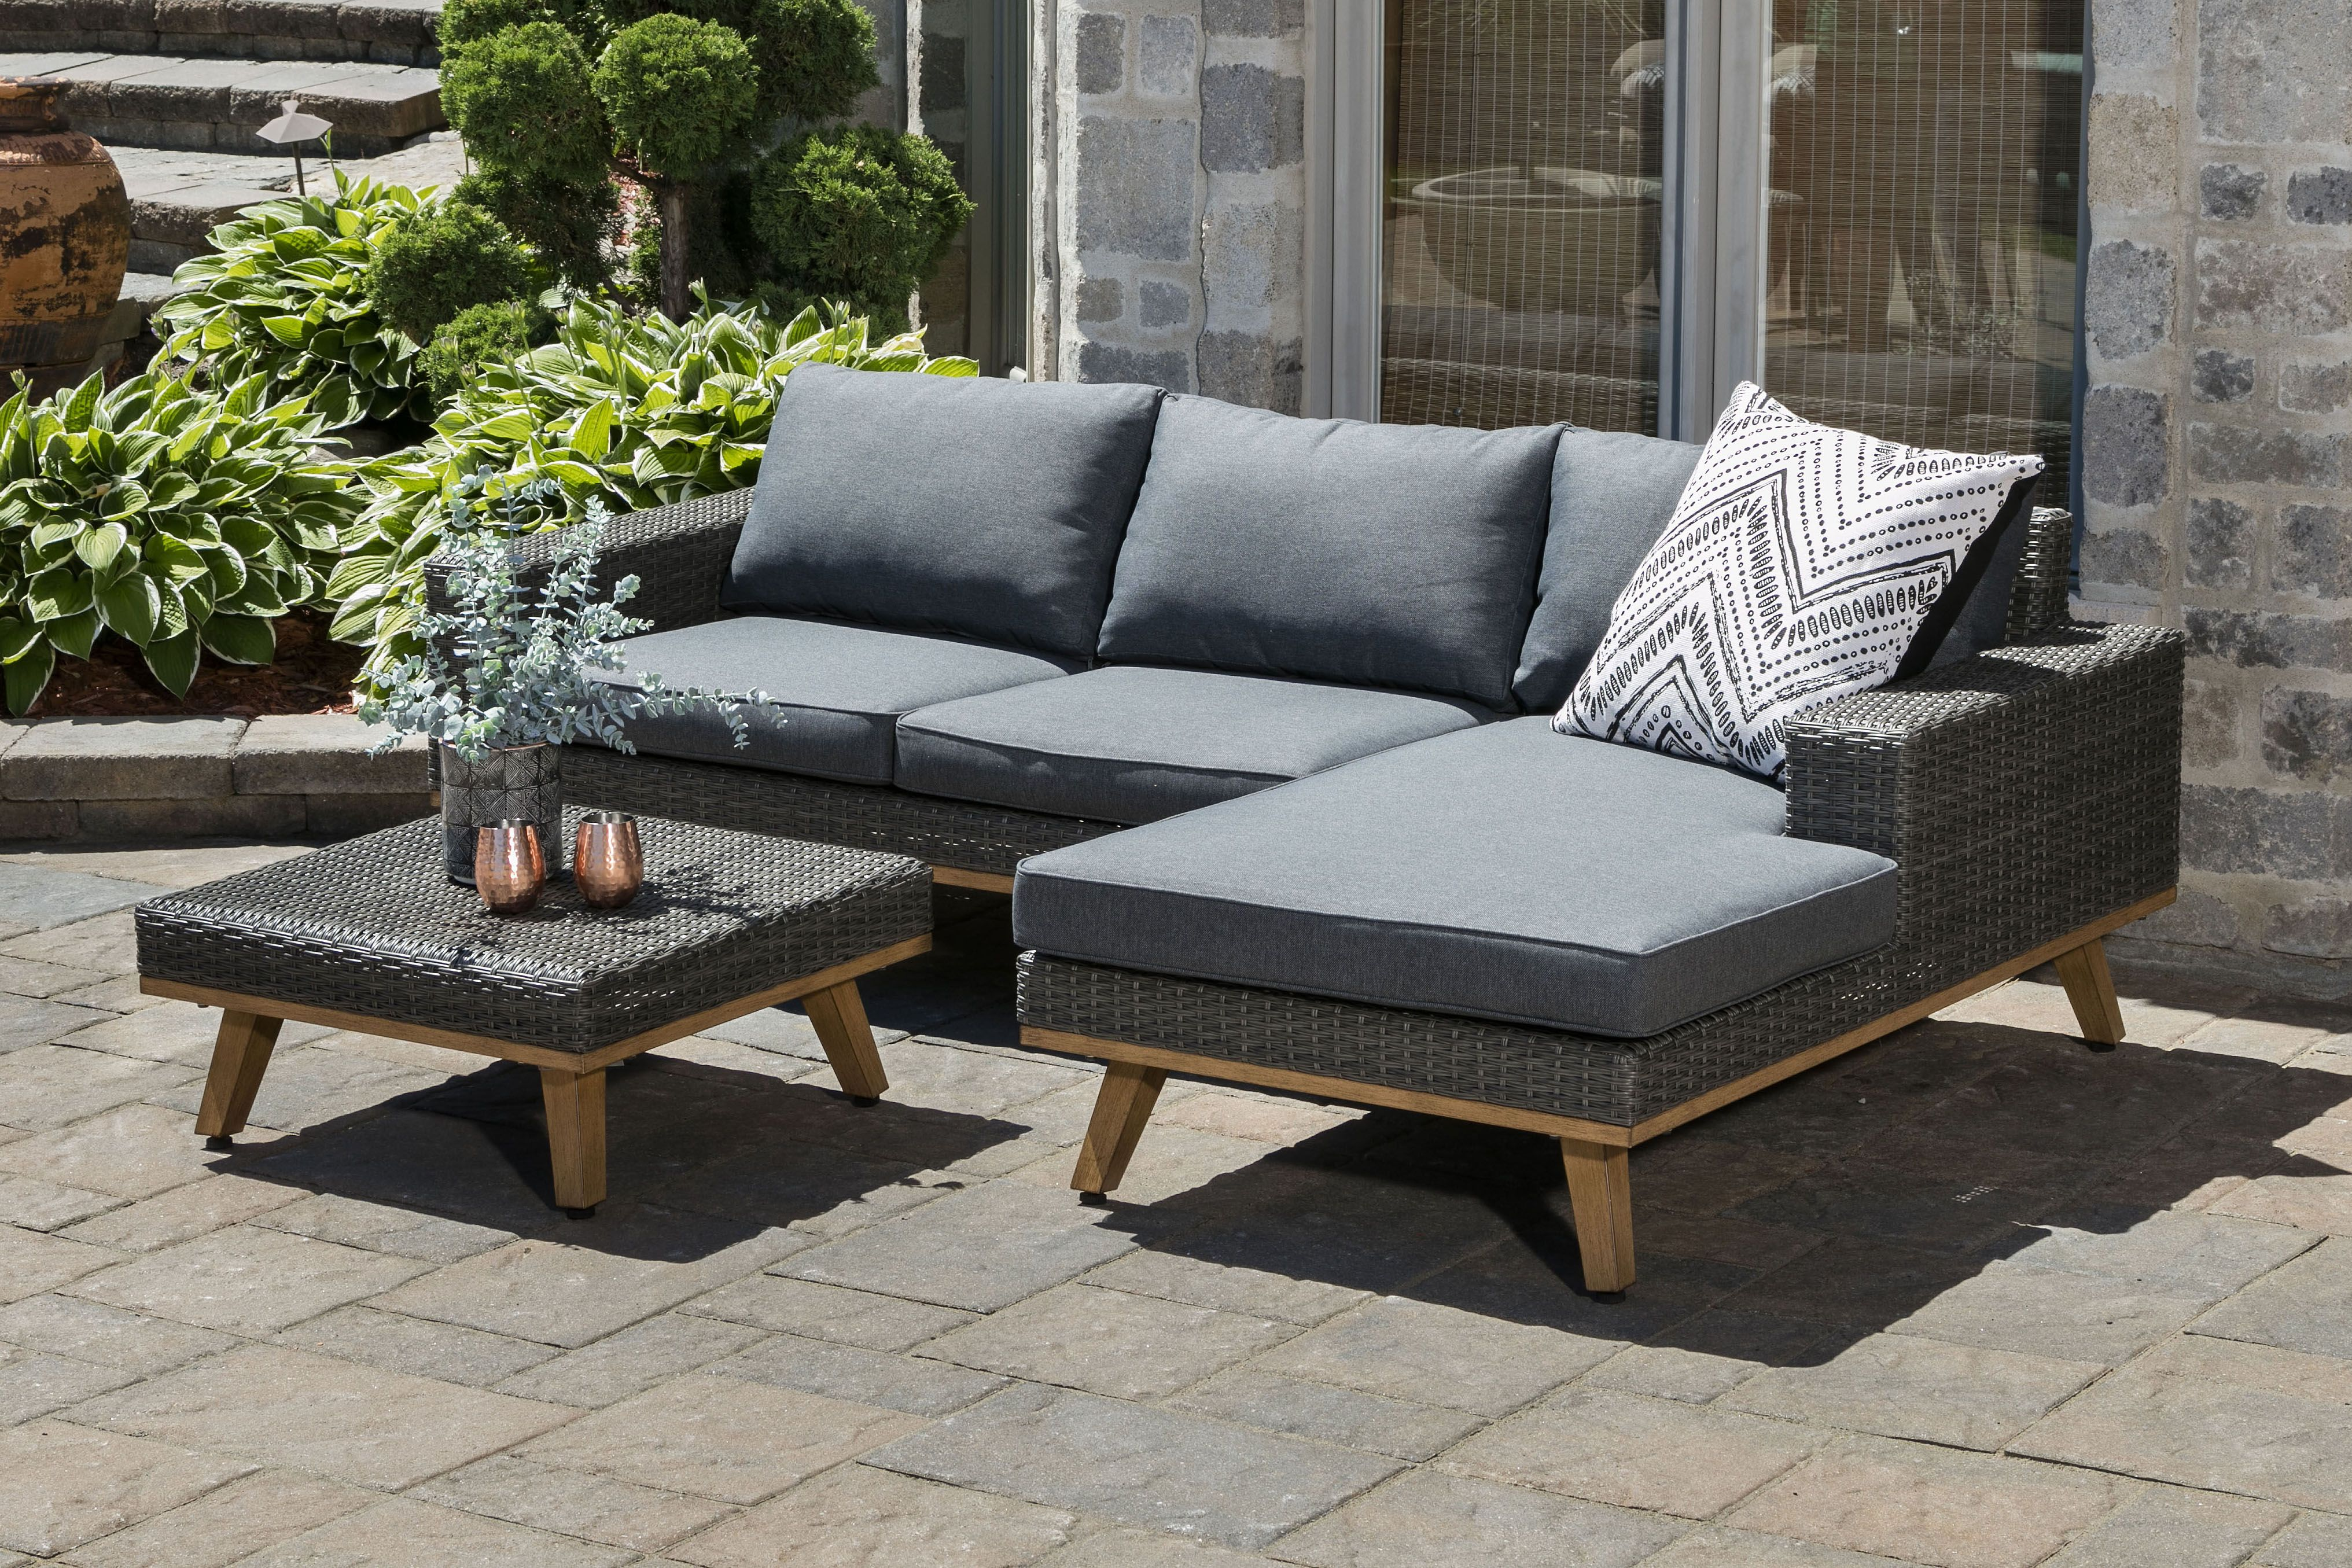 Sectionnel Exterieur Java Outdoor Sectional Outdoor Sectional Sofa Home Decor Outdoor Furniture